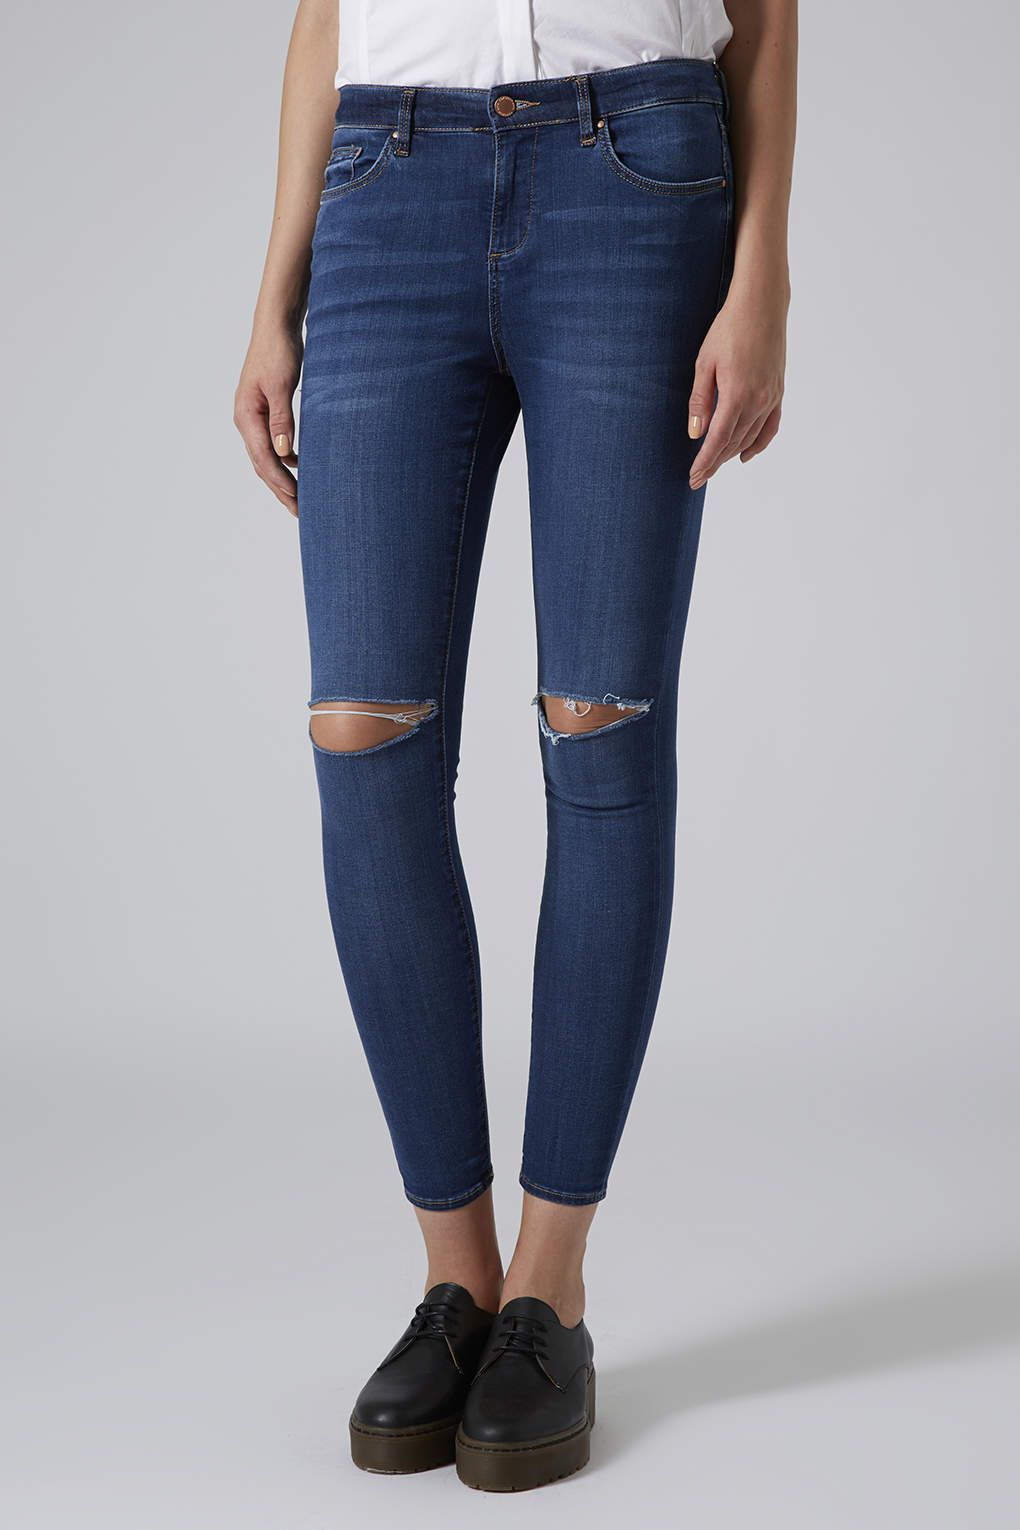 dfb1d24001c MOTO Vintage Wash Ripped Leigh Jeans - Leigh Jeans - Jeans ...